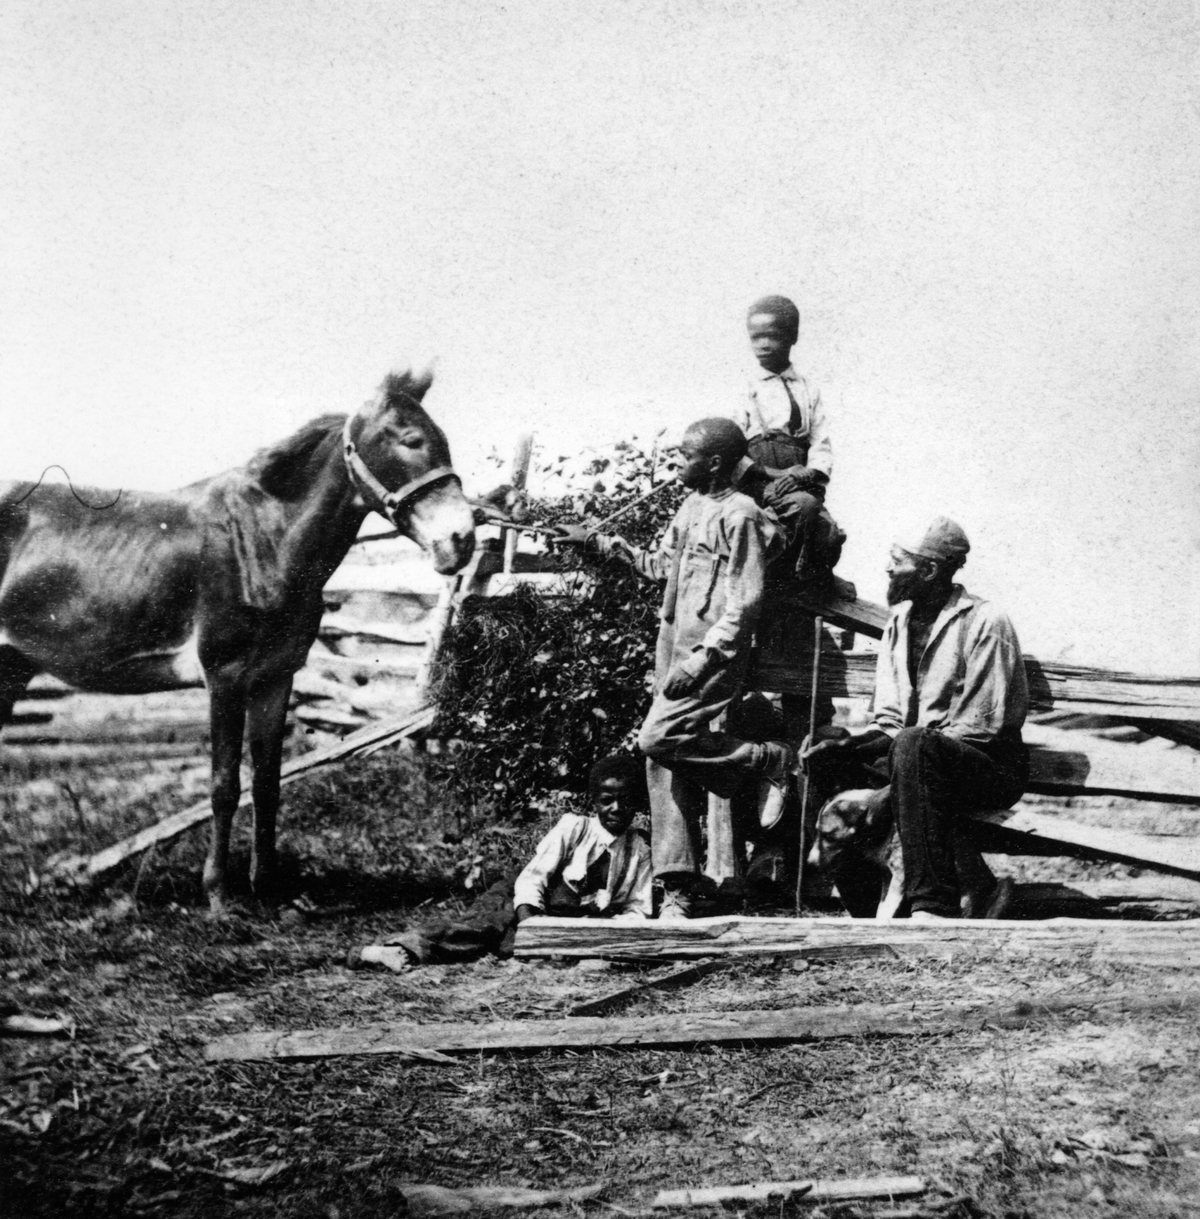 Slaves in a field with a horse during the US civil war circa 1861.